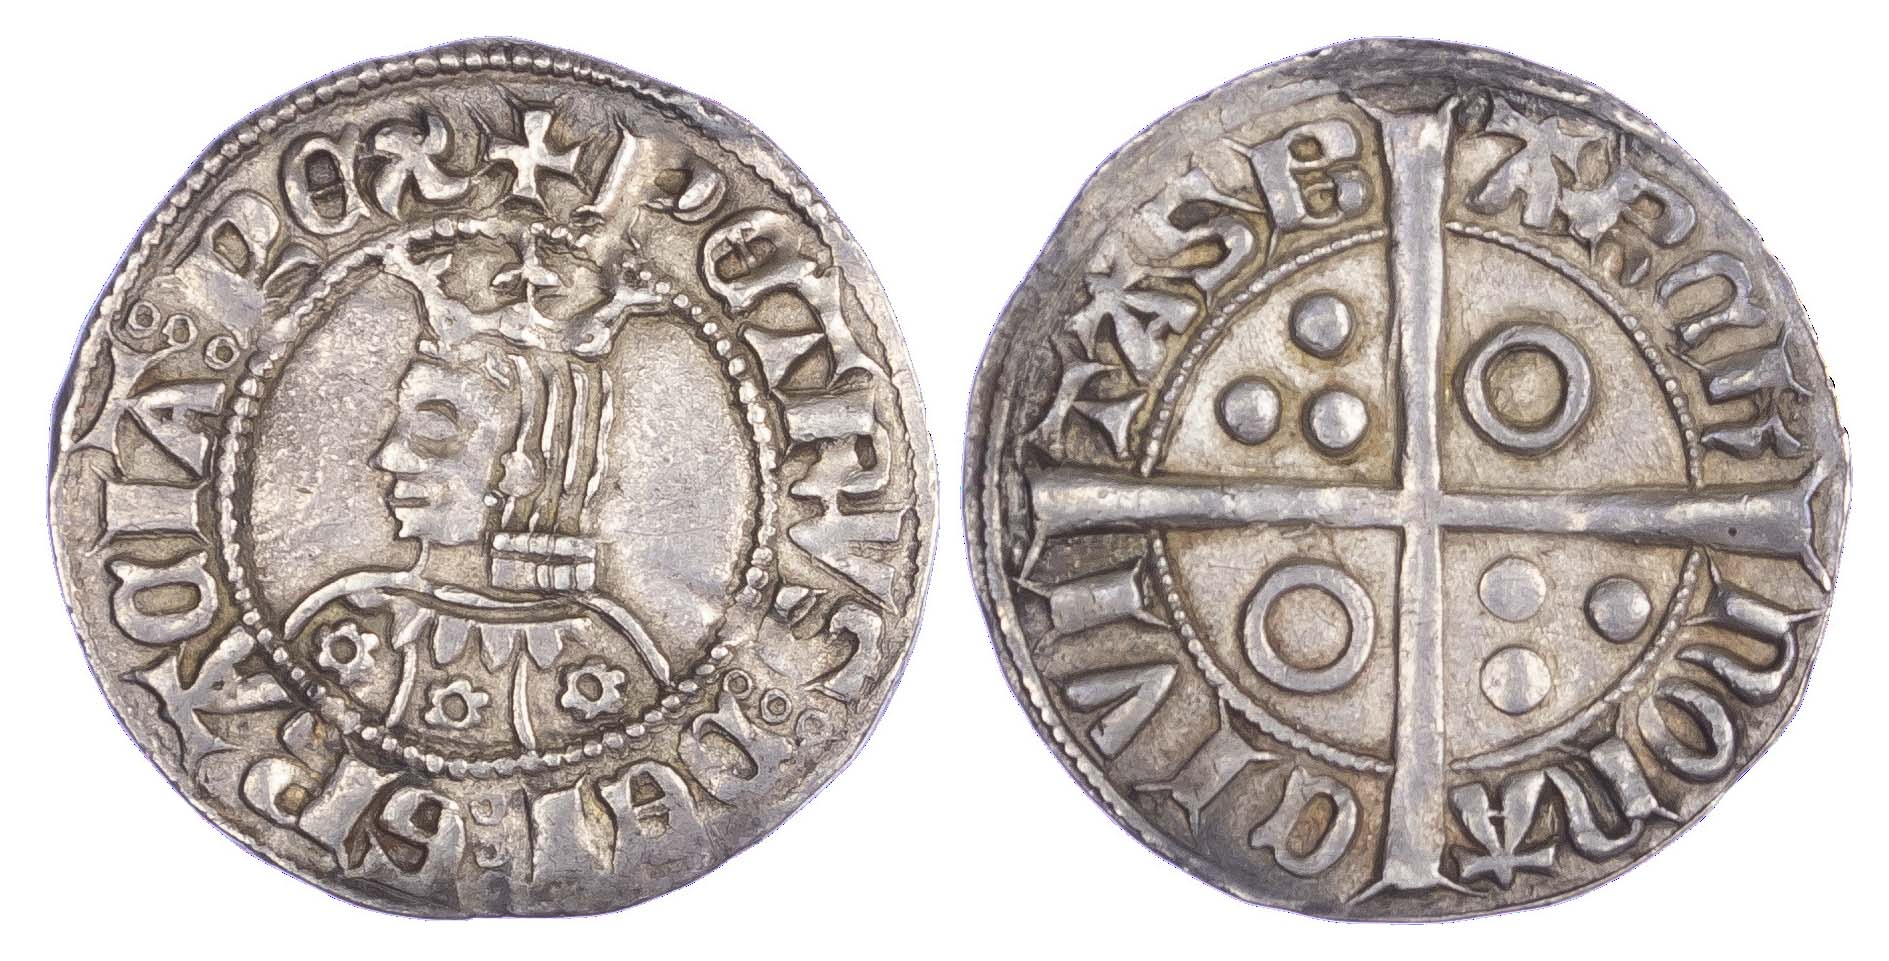 Spain, Pere III (1336-87), silver Croat, Barcelona - extremely fine